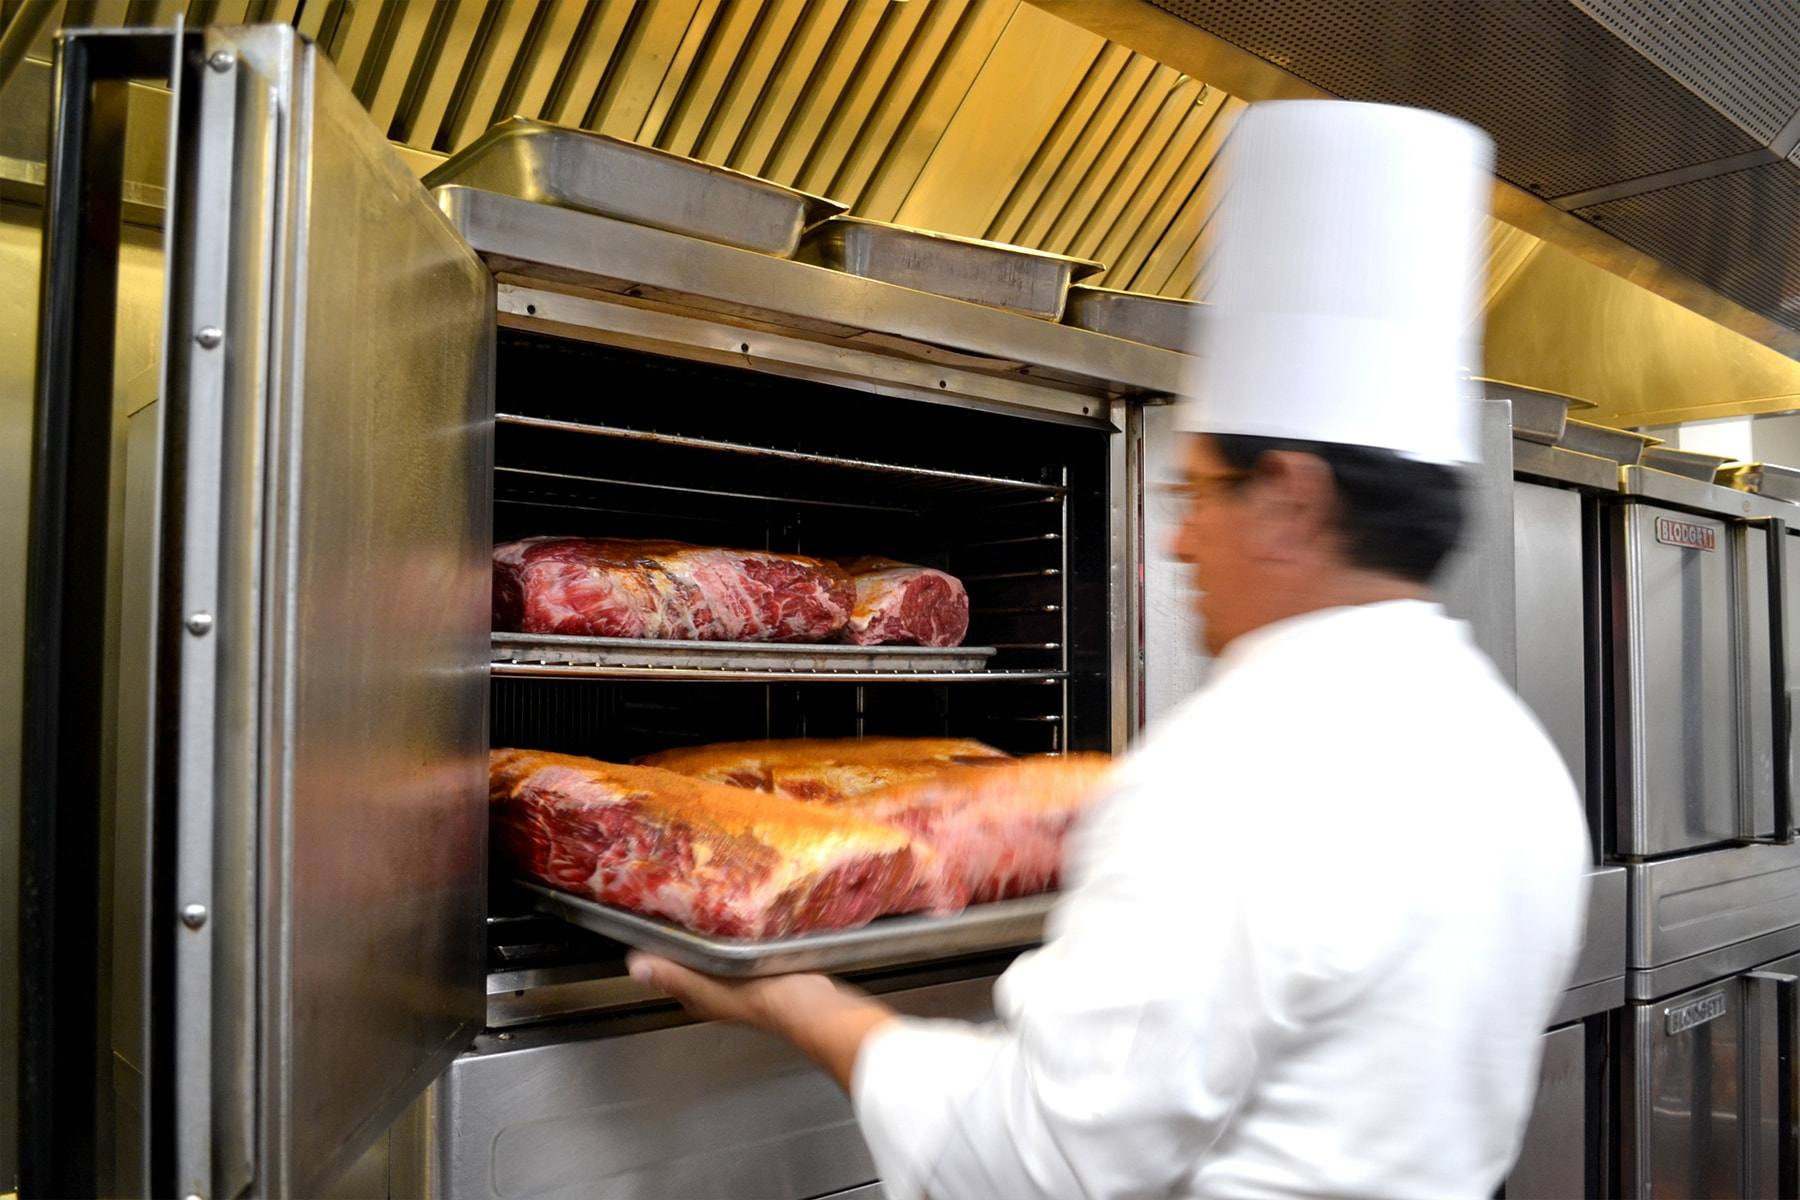 A chef loads prime rib into an oven at Lawry's The Prime Rib